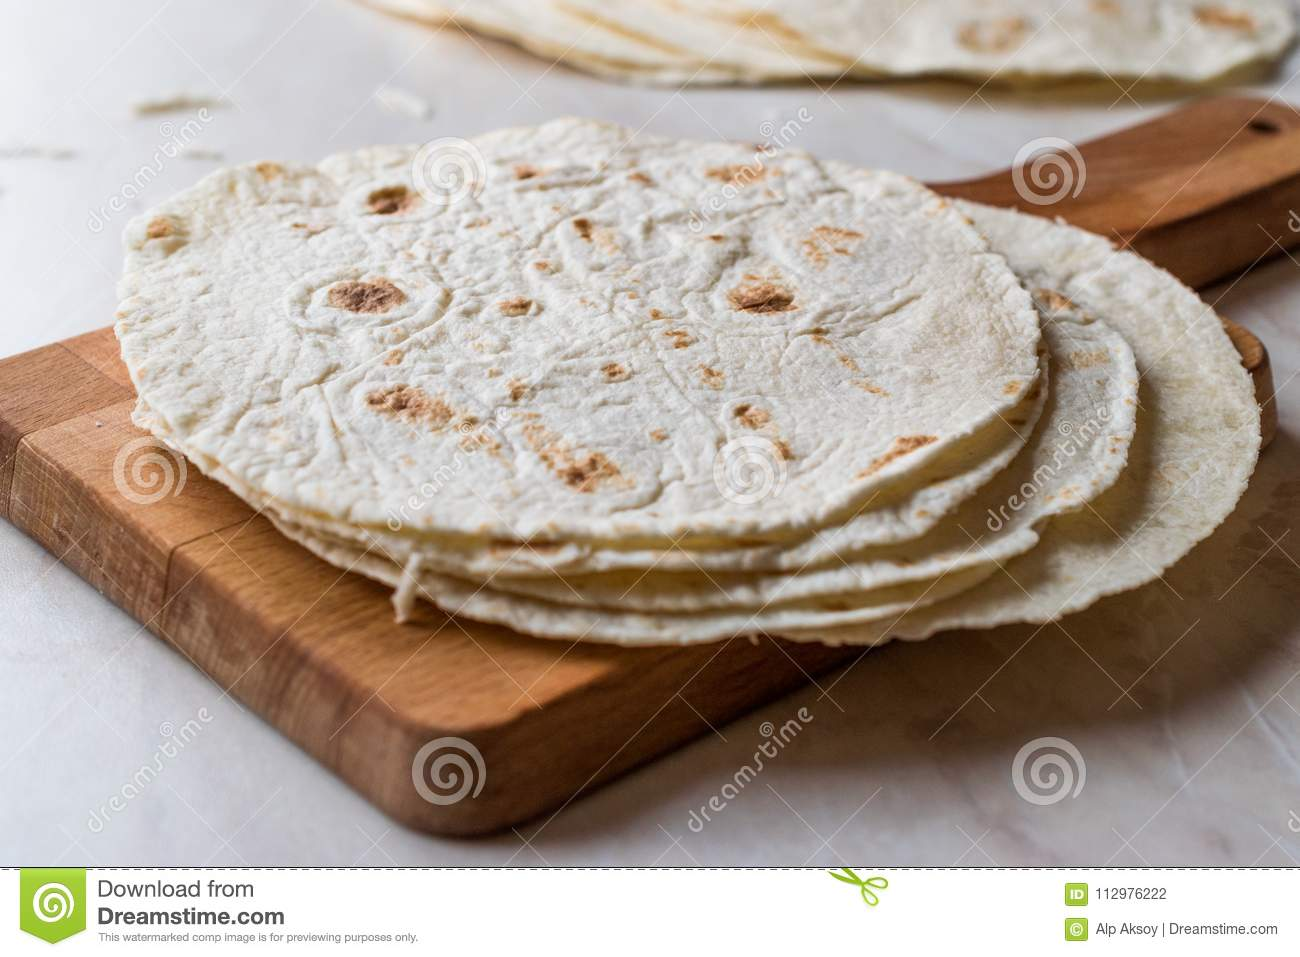 Homemade Mexican Tortillas for Tostada